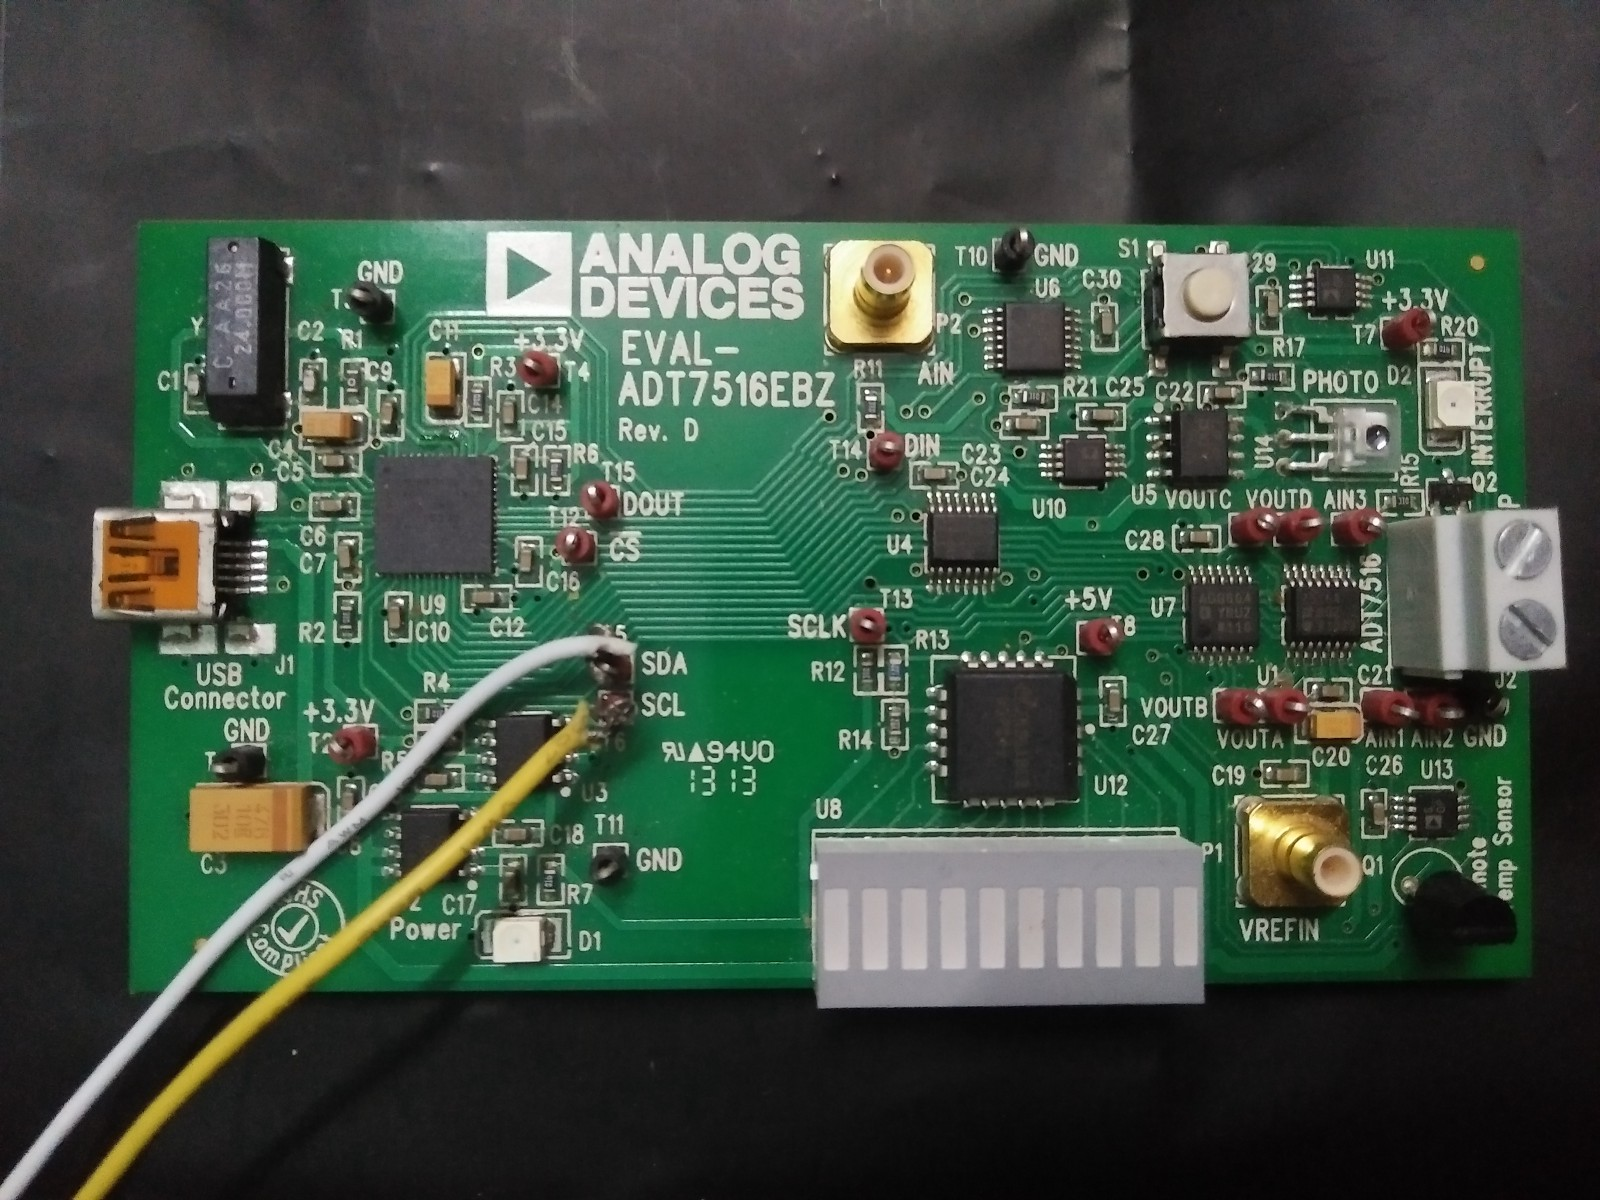 Connecting adt7516 Eval board with BeagleBone Green